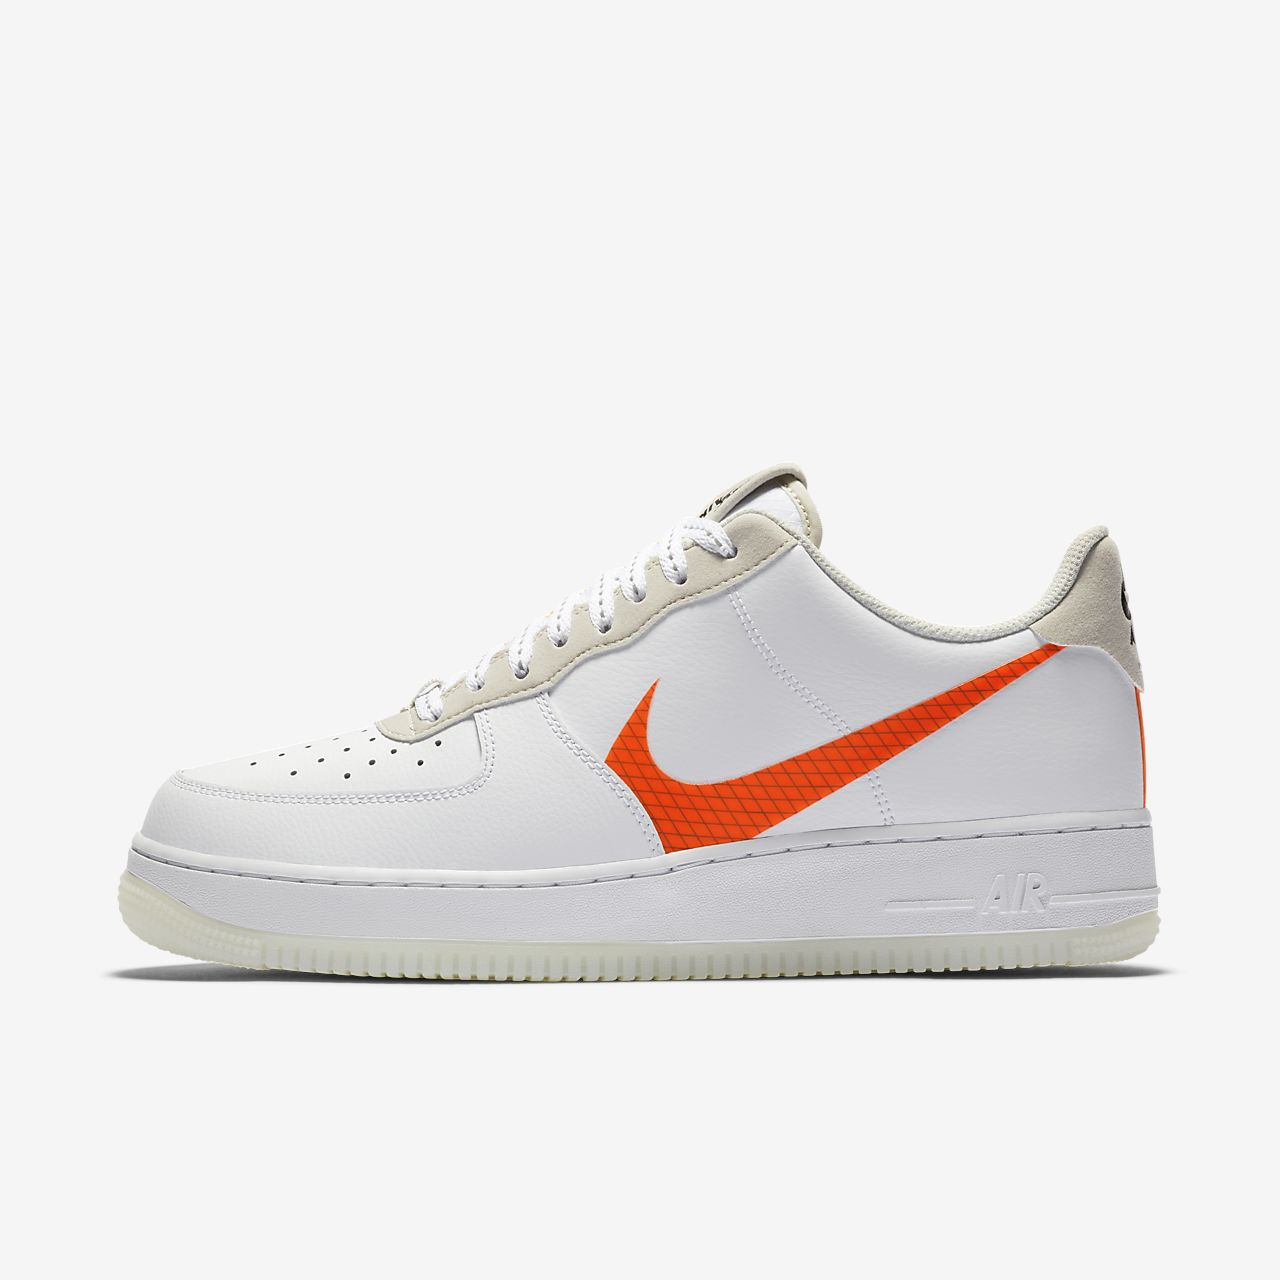 Nike Air Force 1 '07 | EU 40 – 47.5 | 99€ | check link in